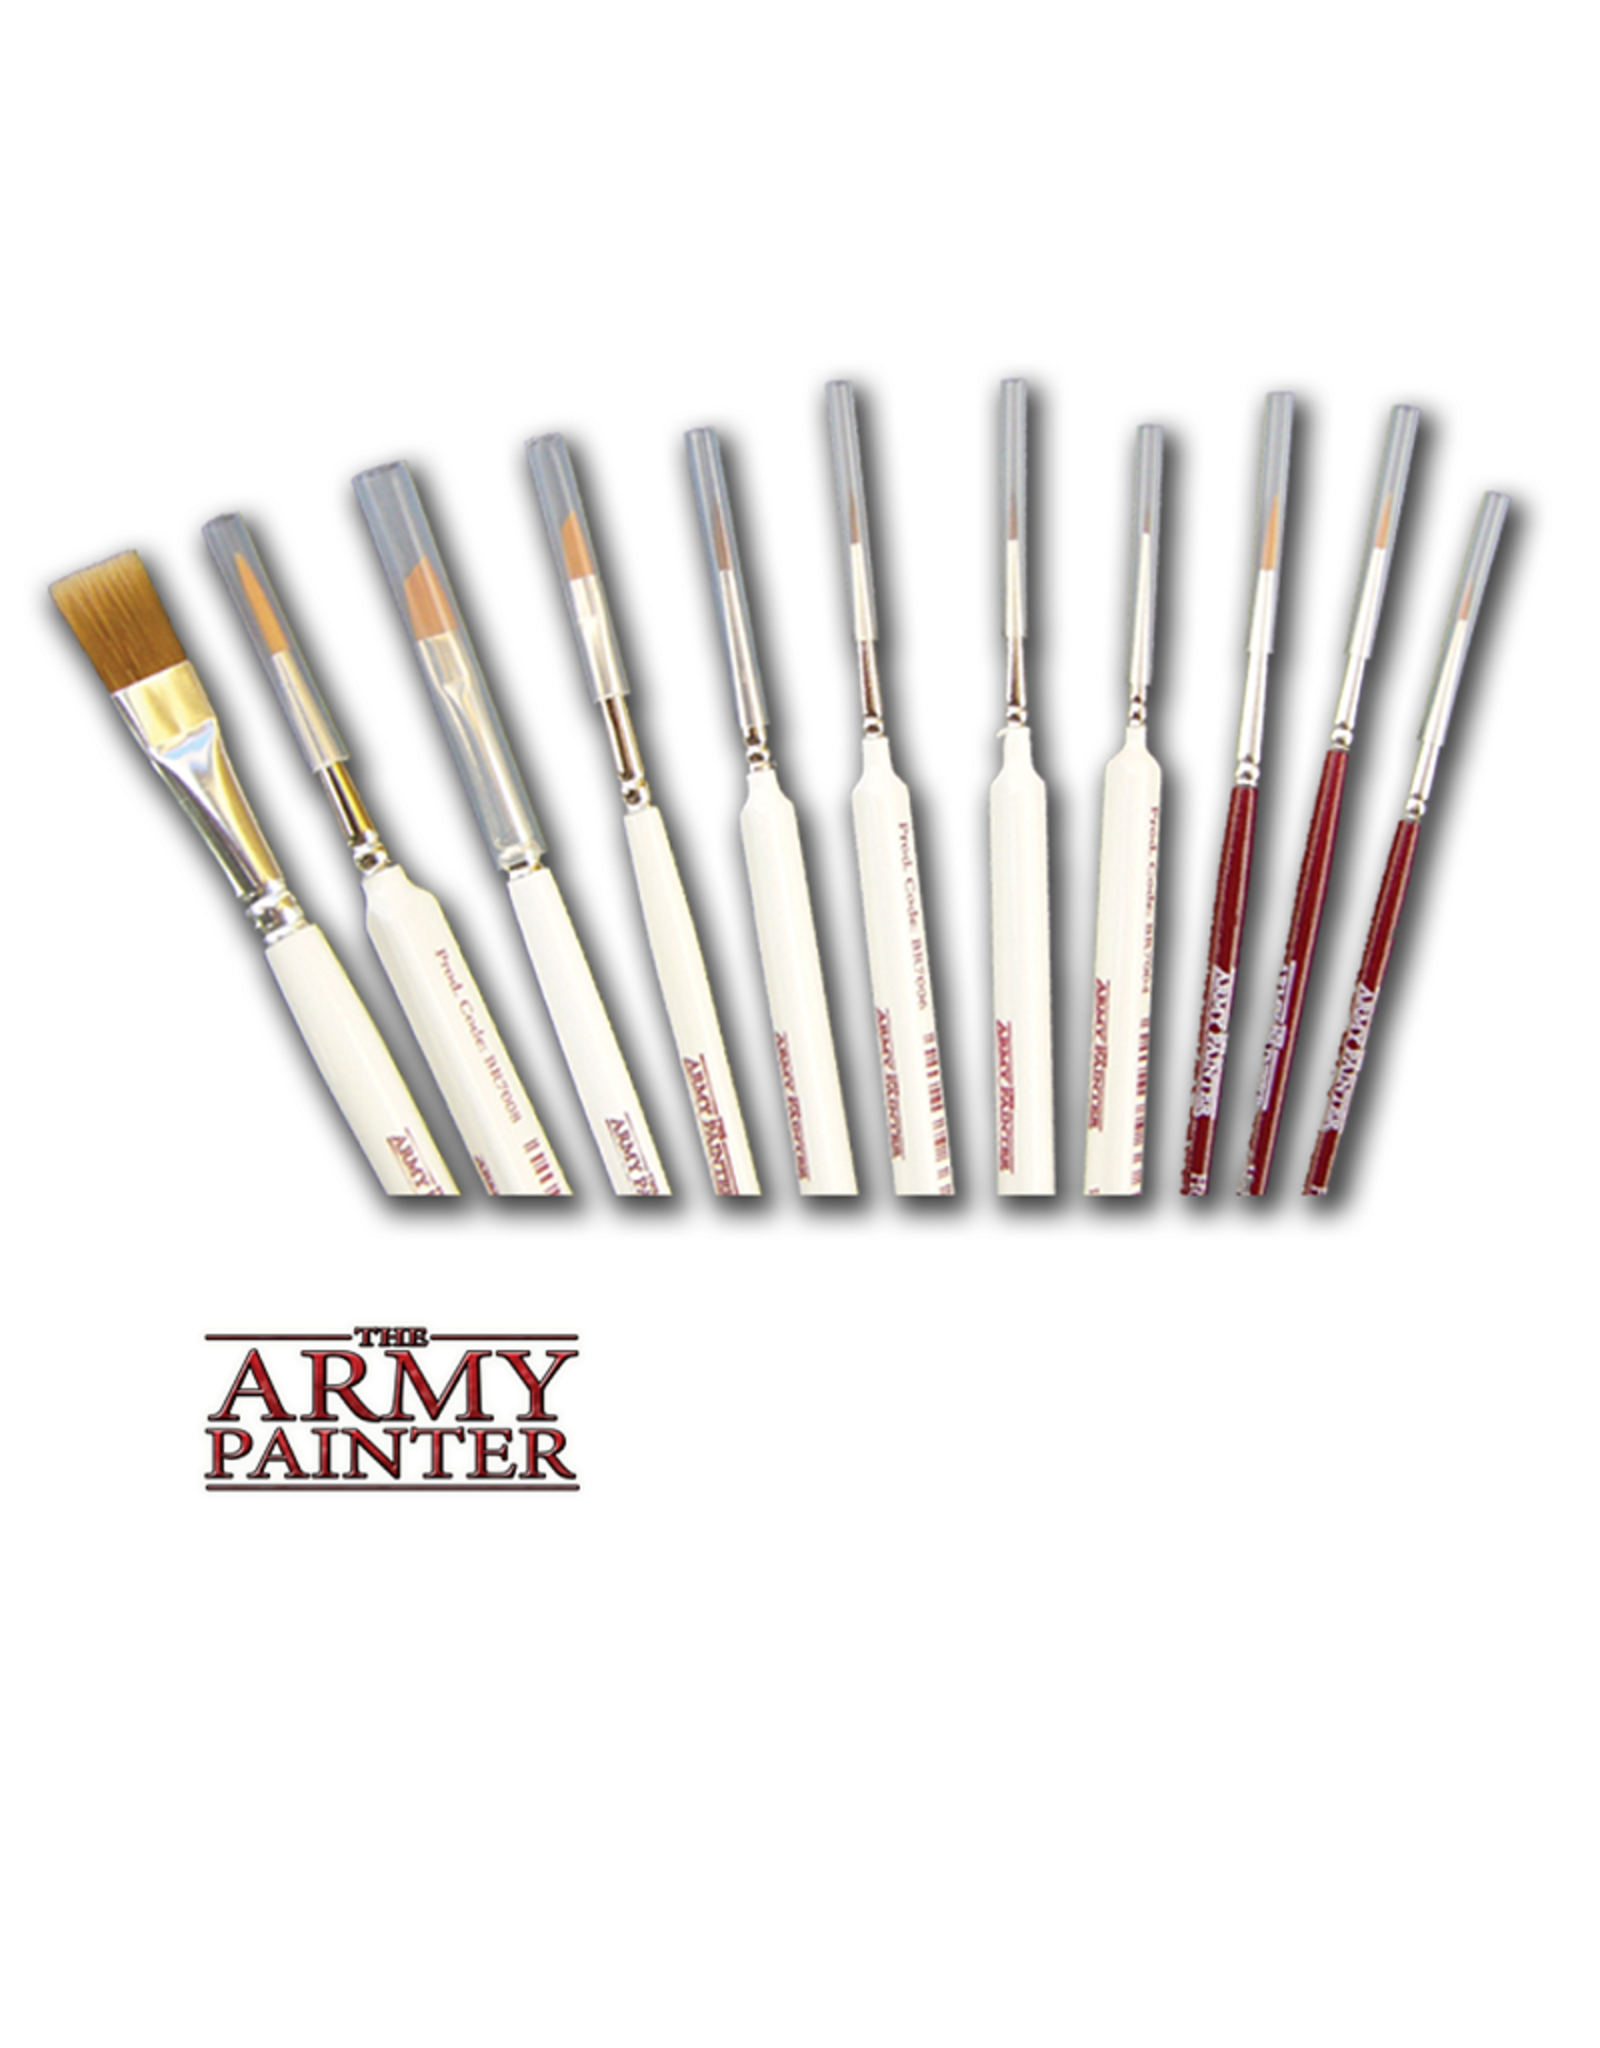 Army Painter Army Painter Paint Brushes